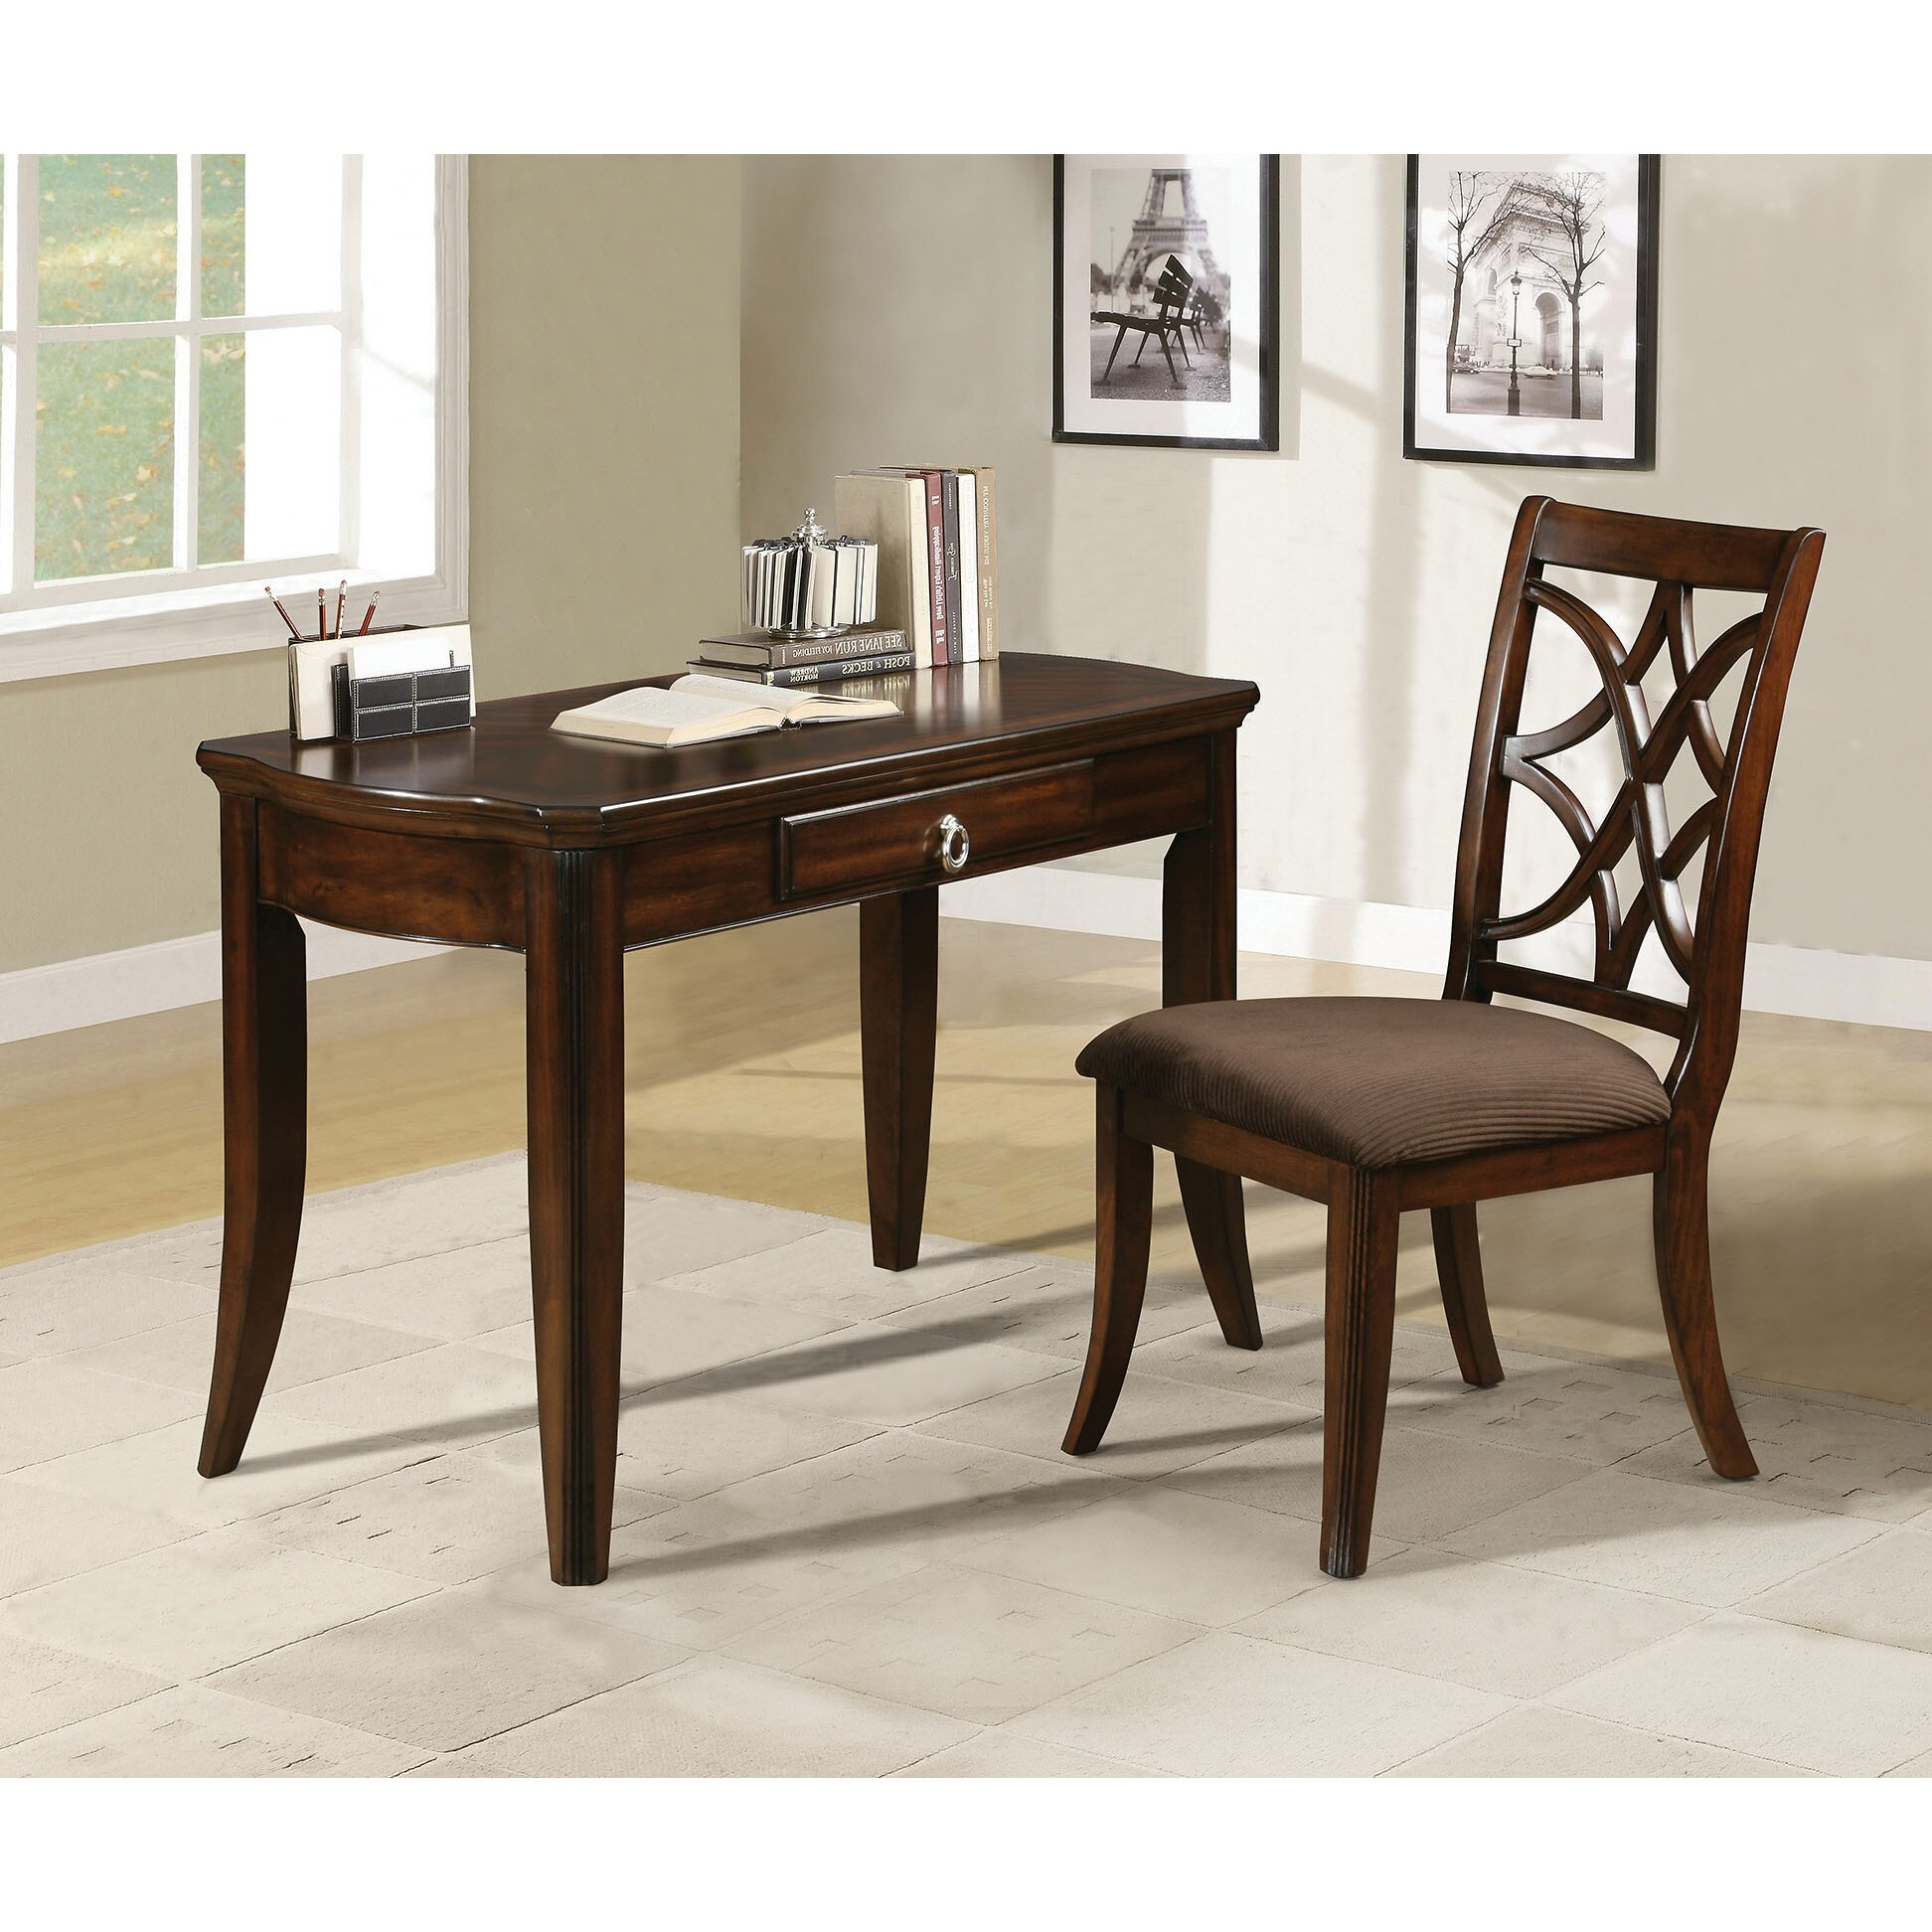 Amazing photo of Homes Studio Altra Writing Desk and Chair Set Wayfair with #352316 color and 1944x1944 pixels